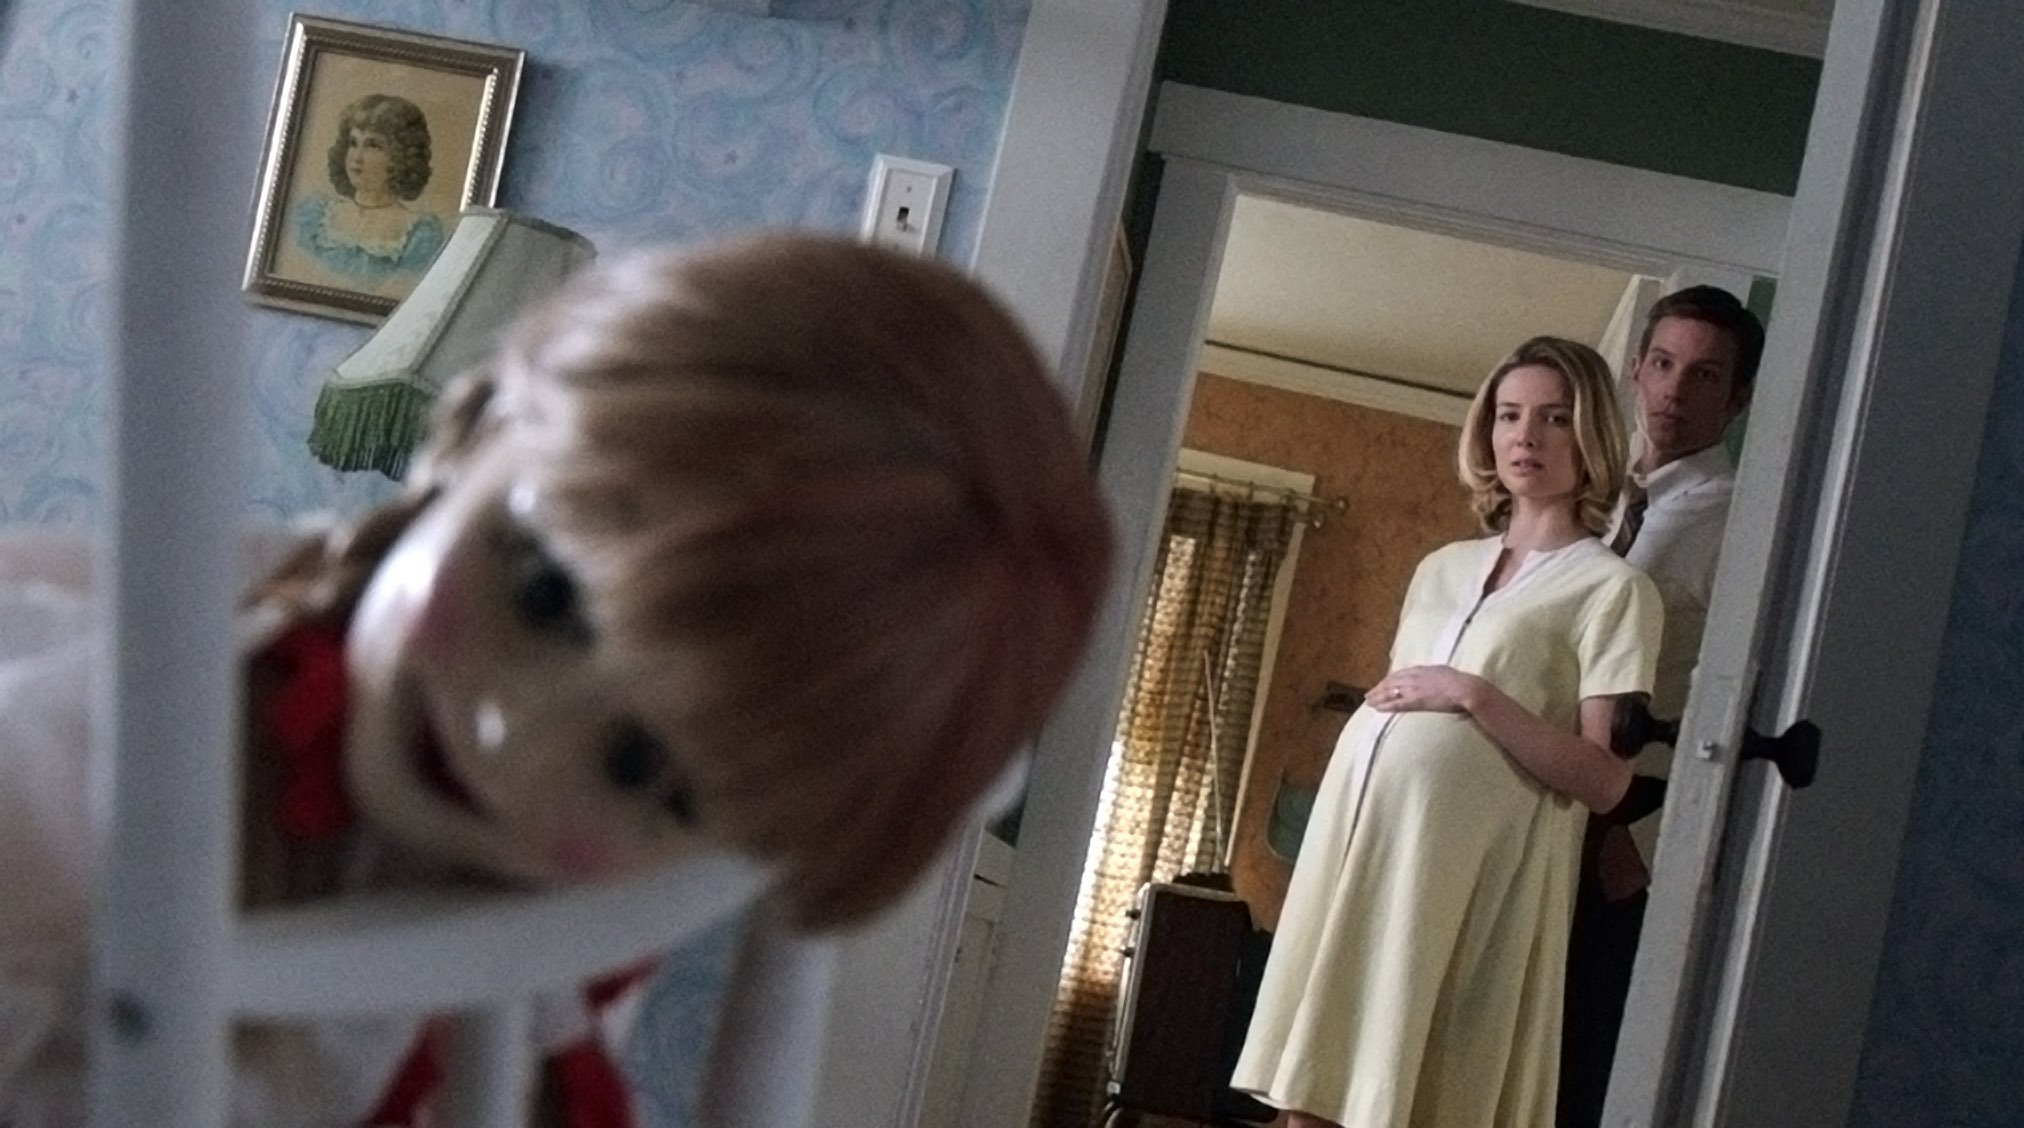 Annabelle (2014) kicked off what's known as the Conjuring universe.